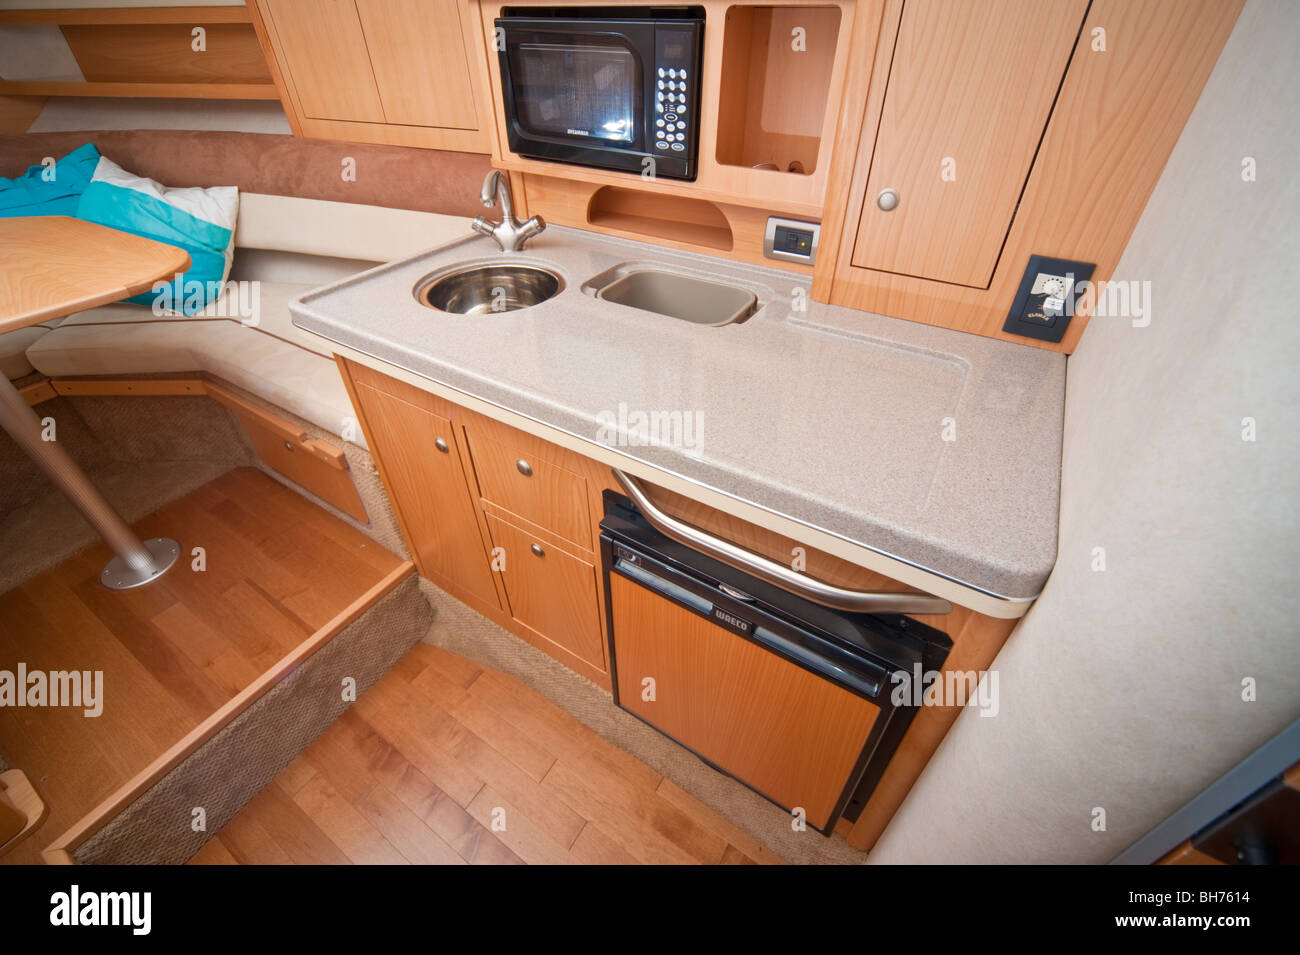 Kitchen Galley In A Sea Ray 305 Powerboat Yacht 2009 Model Stock Photo Alamy